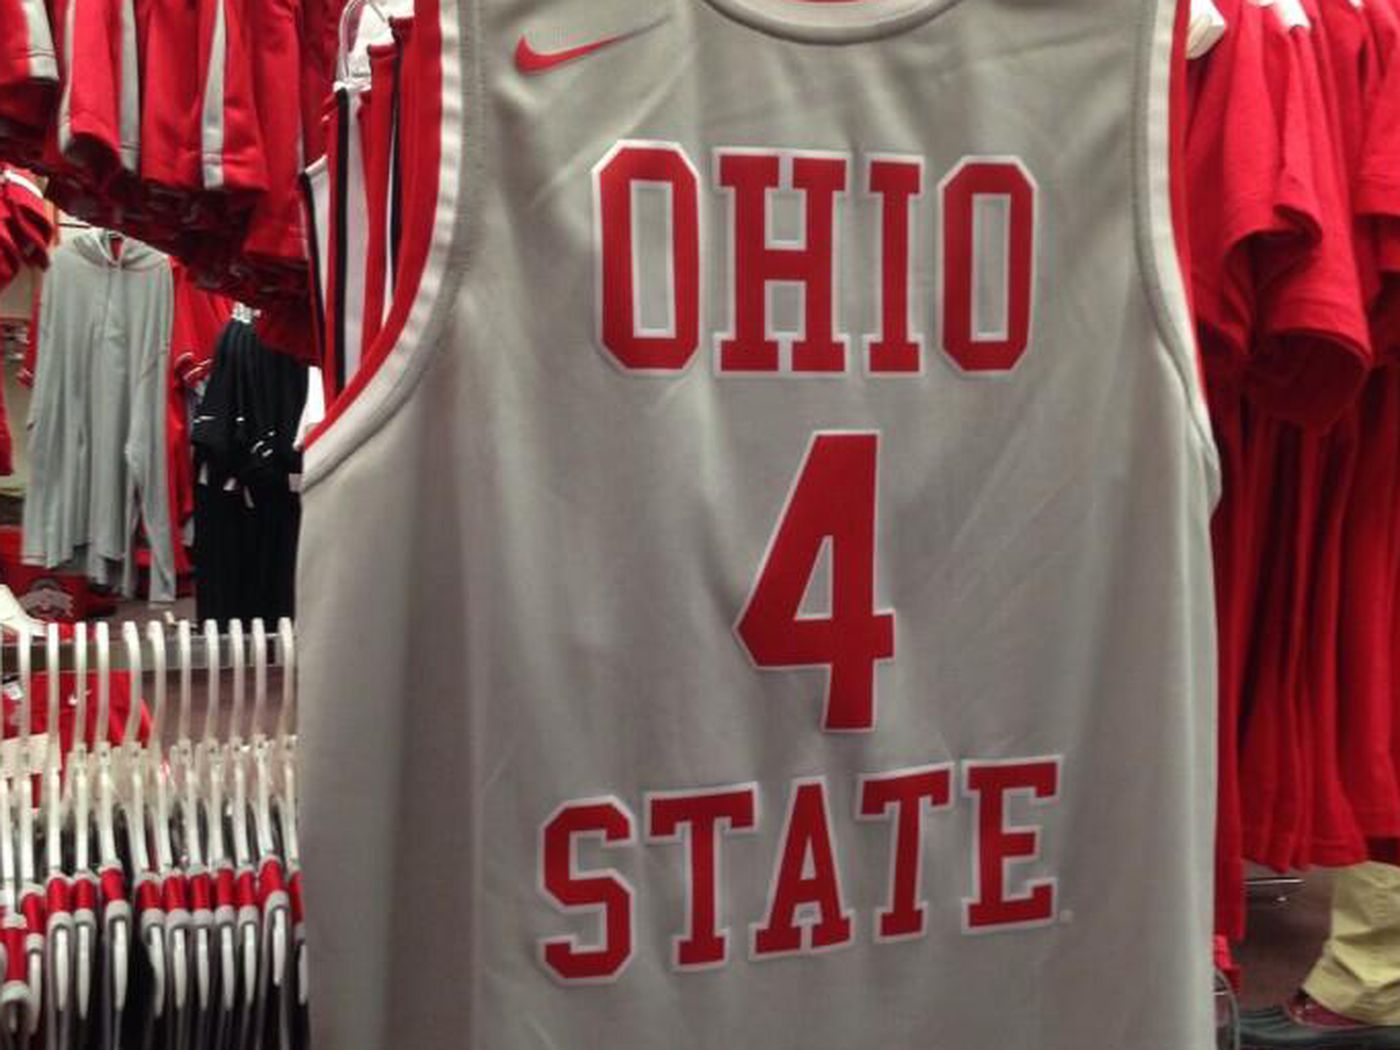 Check out Ohio State's 2014 alternate throwback uniforms